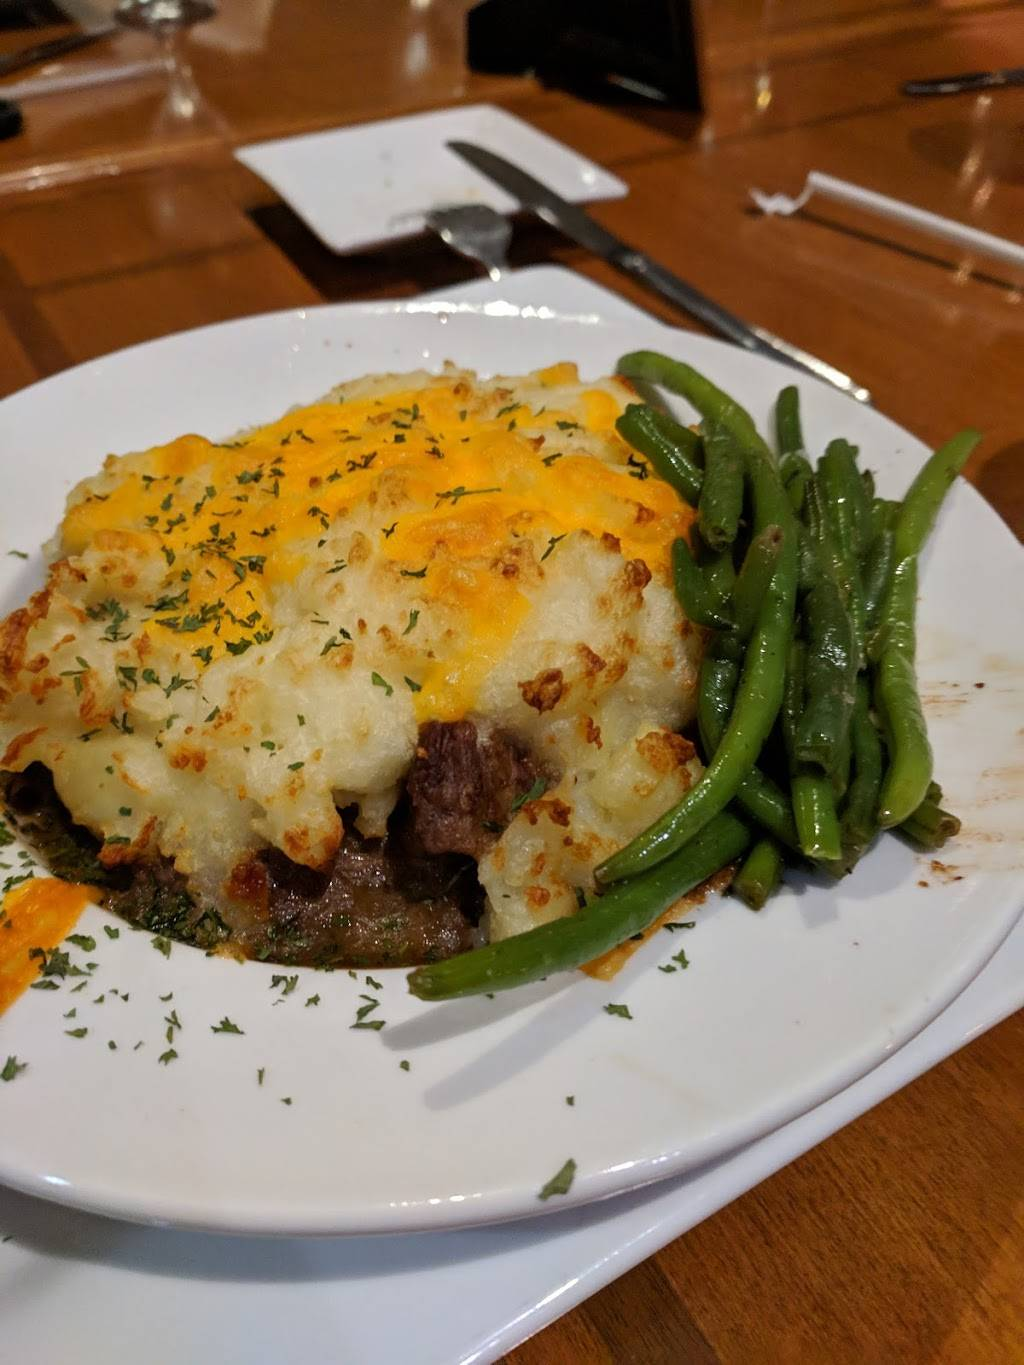 The Eagles Nest Restaurant at The Tillery Tradition Country Clu | restaurant | 214 Tradition Dr, Mt Gilead, NC 27306, USA | 9104395578 OR +1 910-439-5578